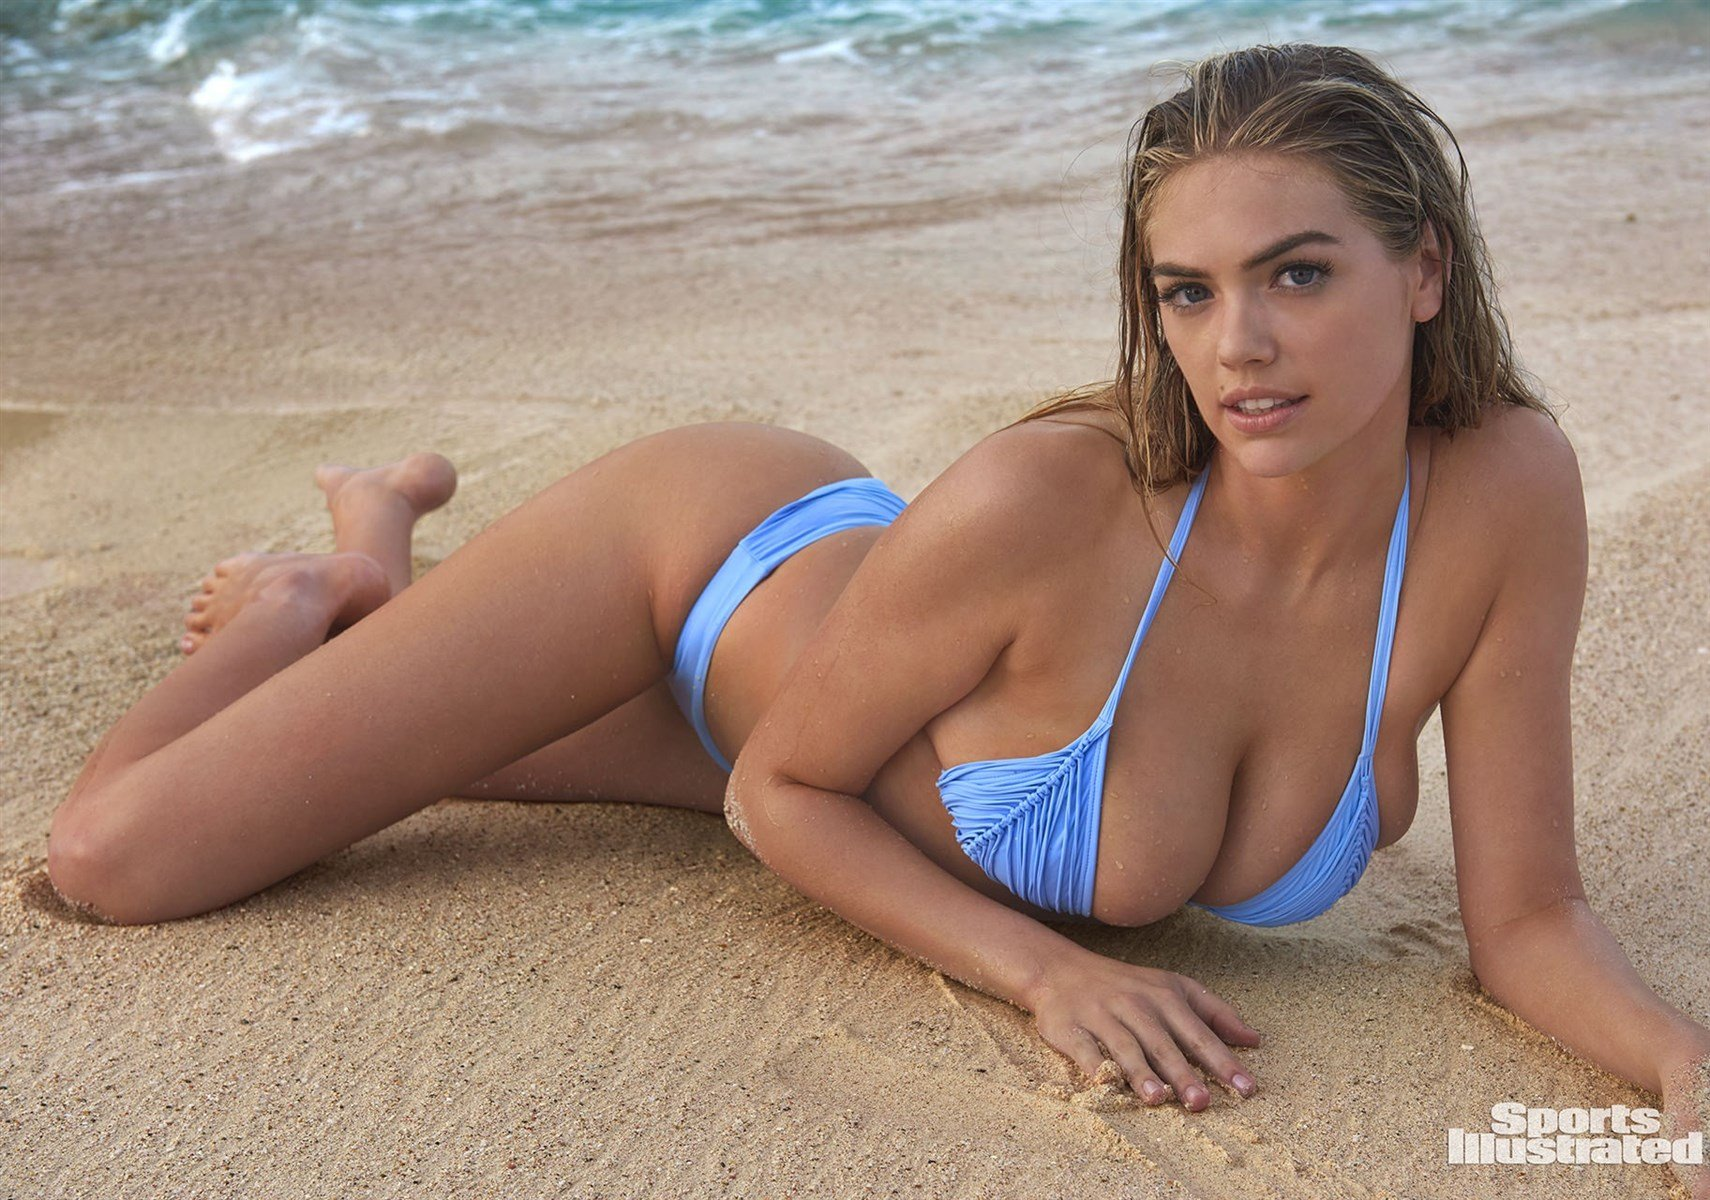 Kate Upton's Topless Titties Nearly Get Her Killed